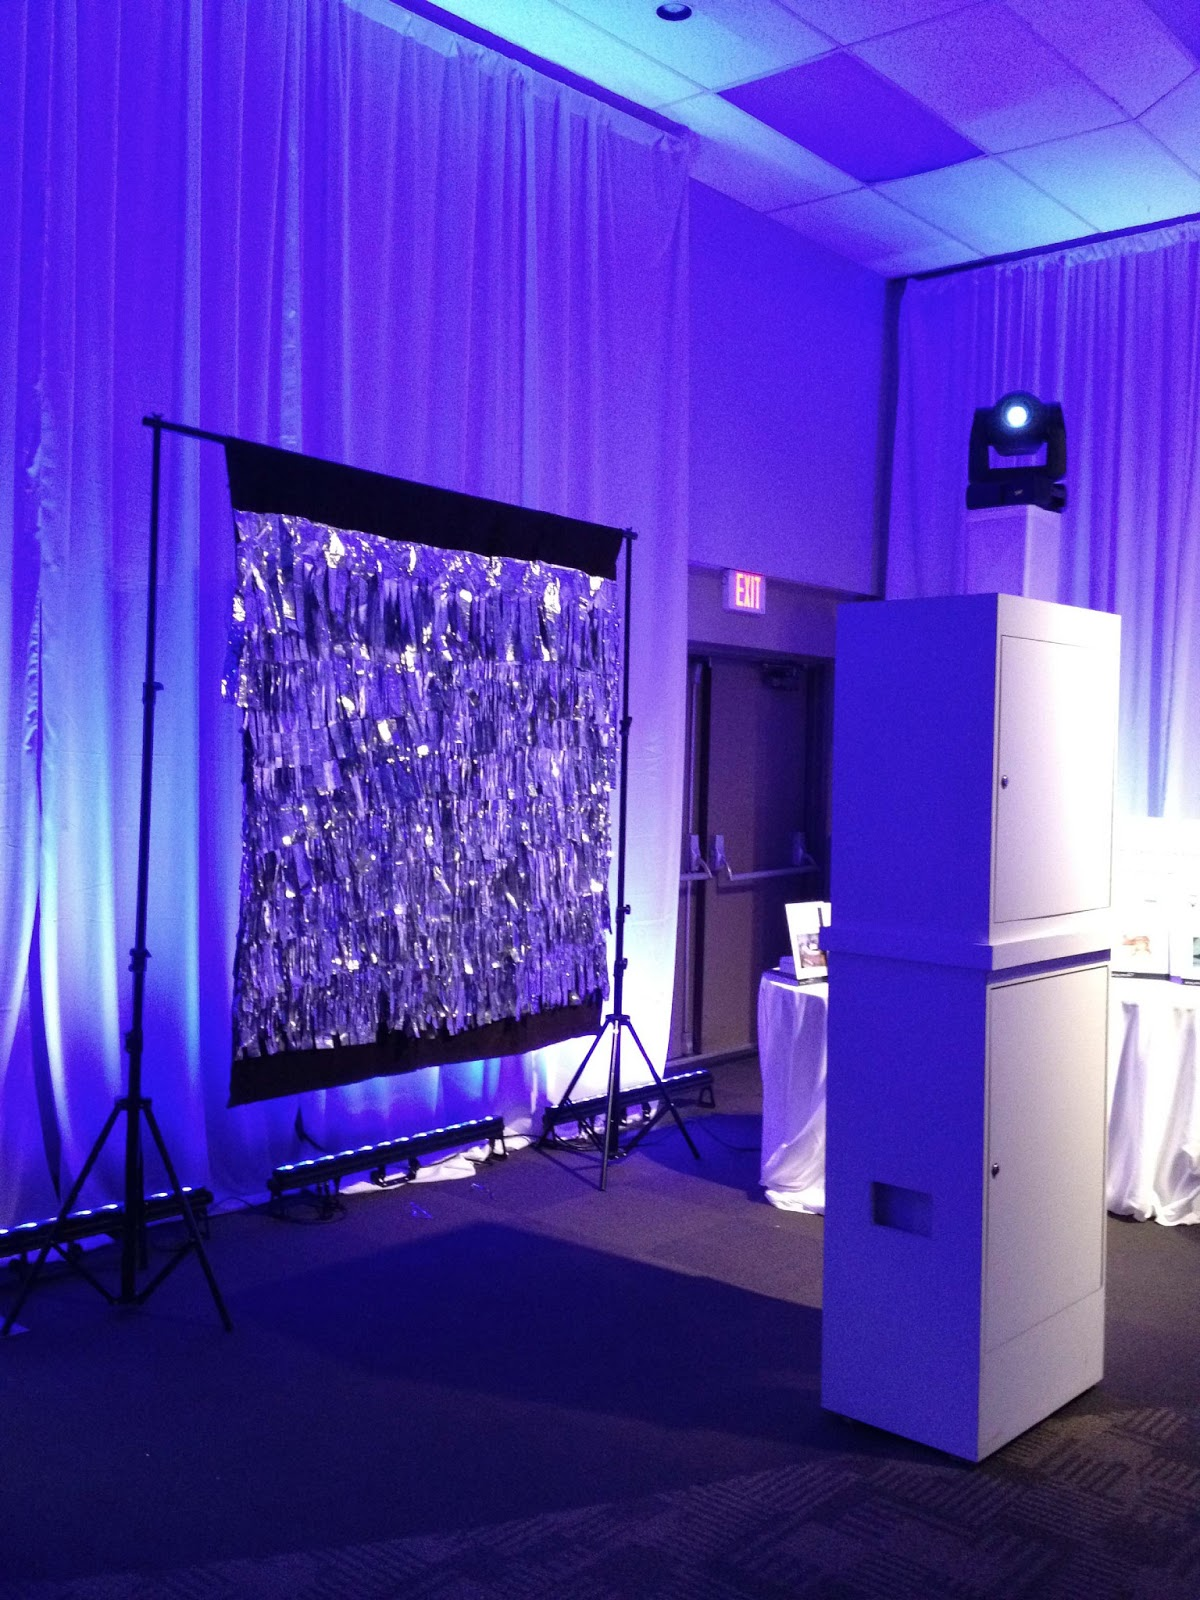 An open booth rental available from Photobooth Vancouver.